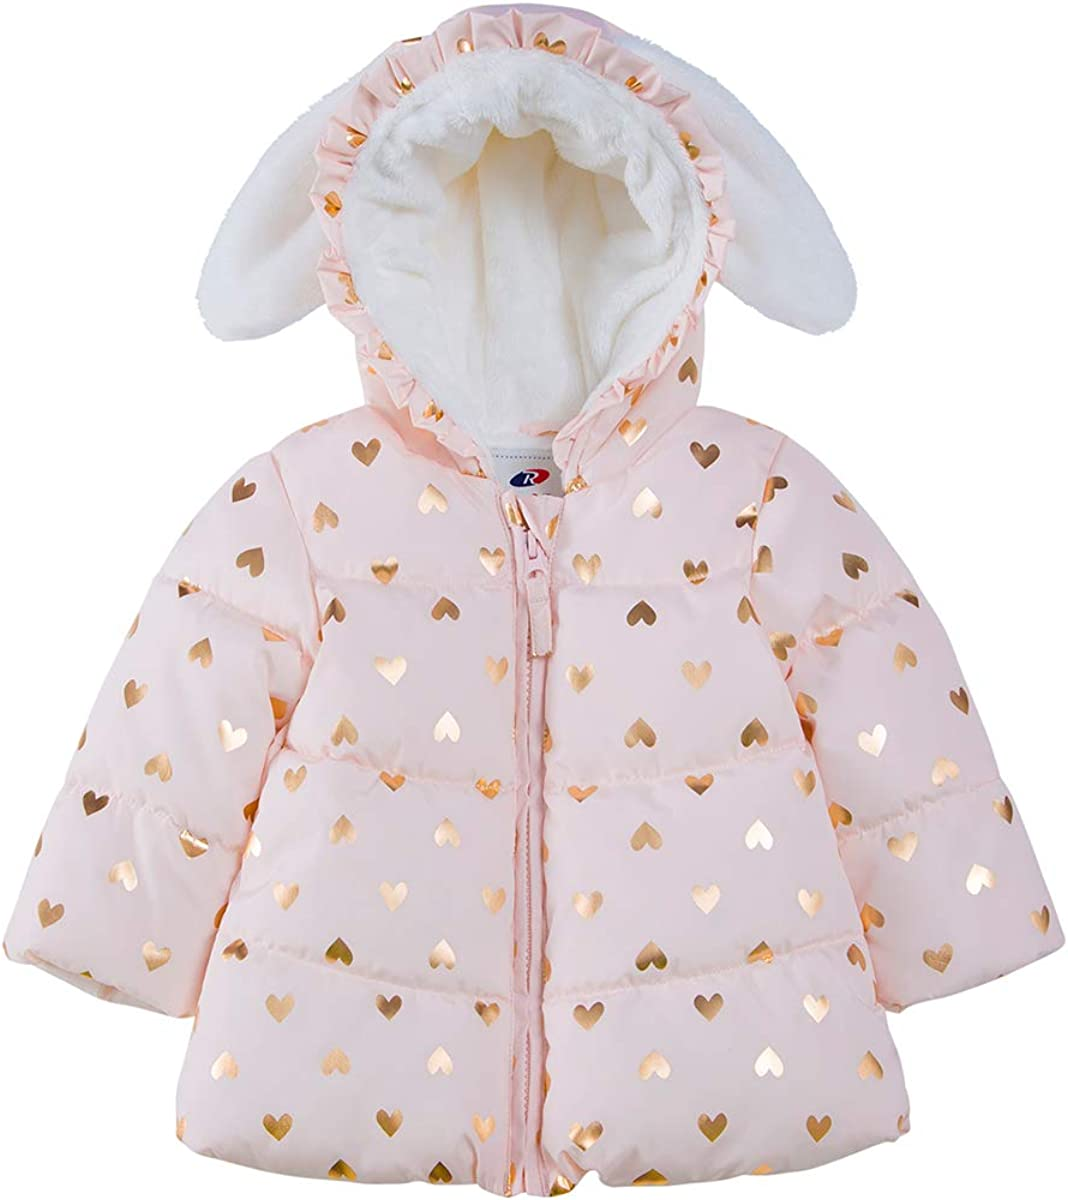 Rokka&Rolla Baby Girls' Water-Resistant Soft Mini Fur Lined Puffer Jacket Coat for Newborn Infant Toddler